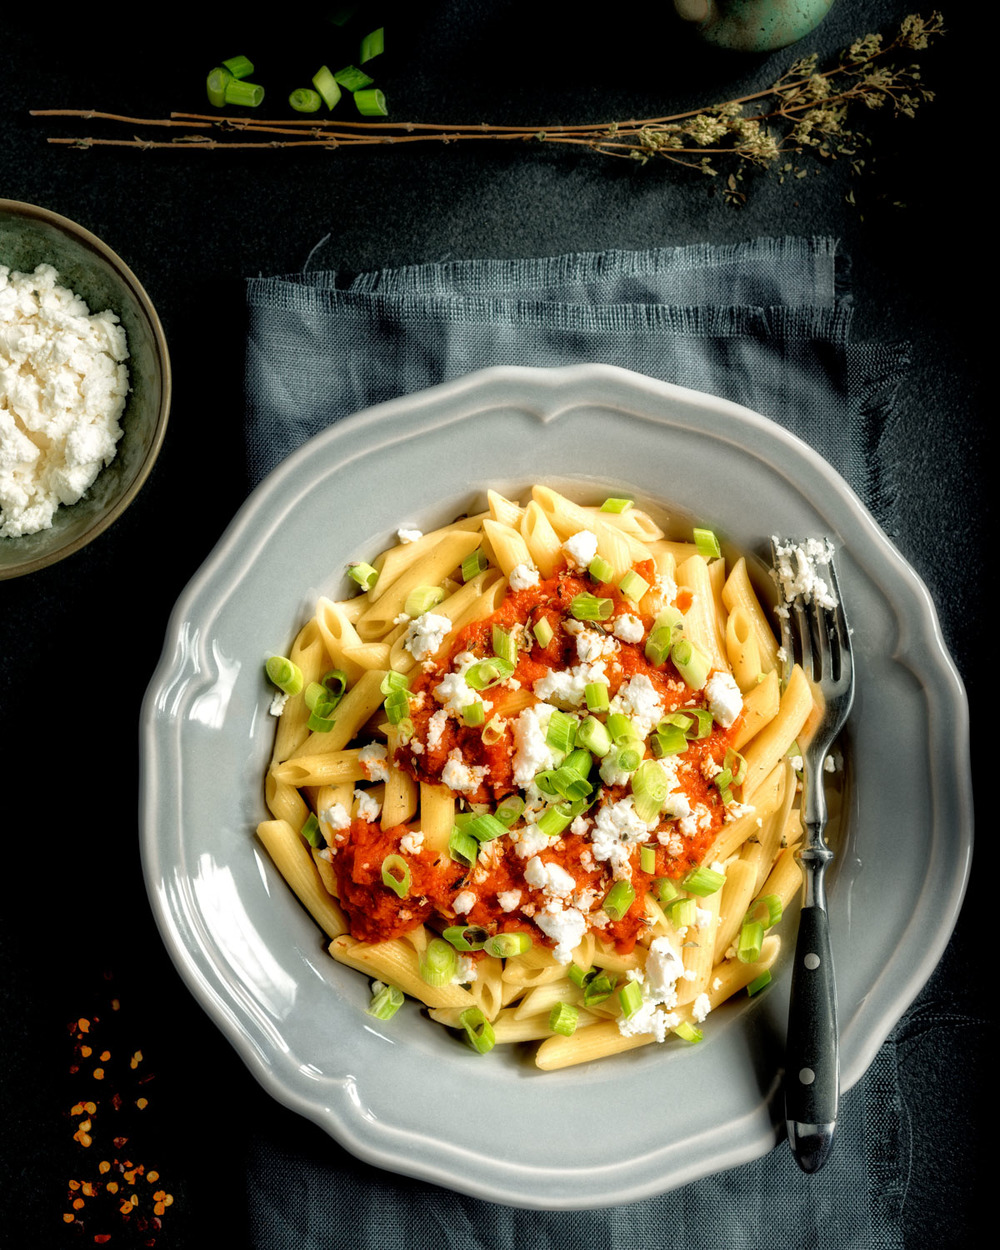 Pasta with tomatoe sauce and green onions-081-Edit-2-Edit-Edit-2.JPG